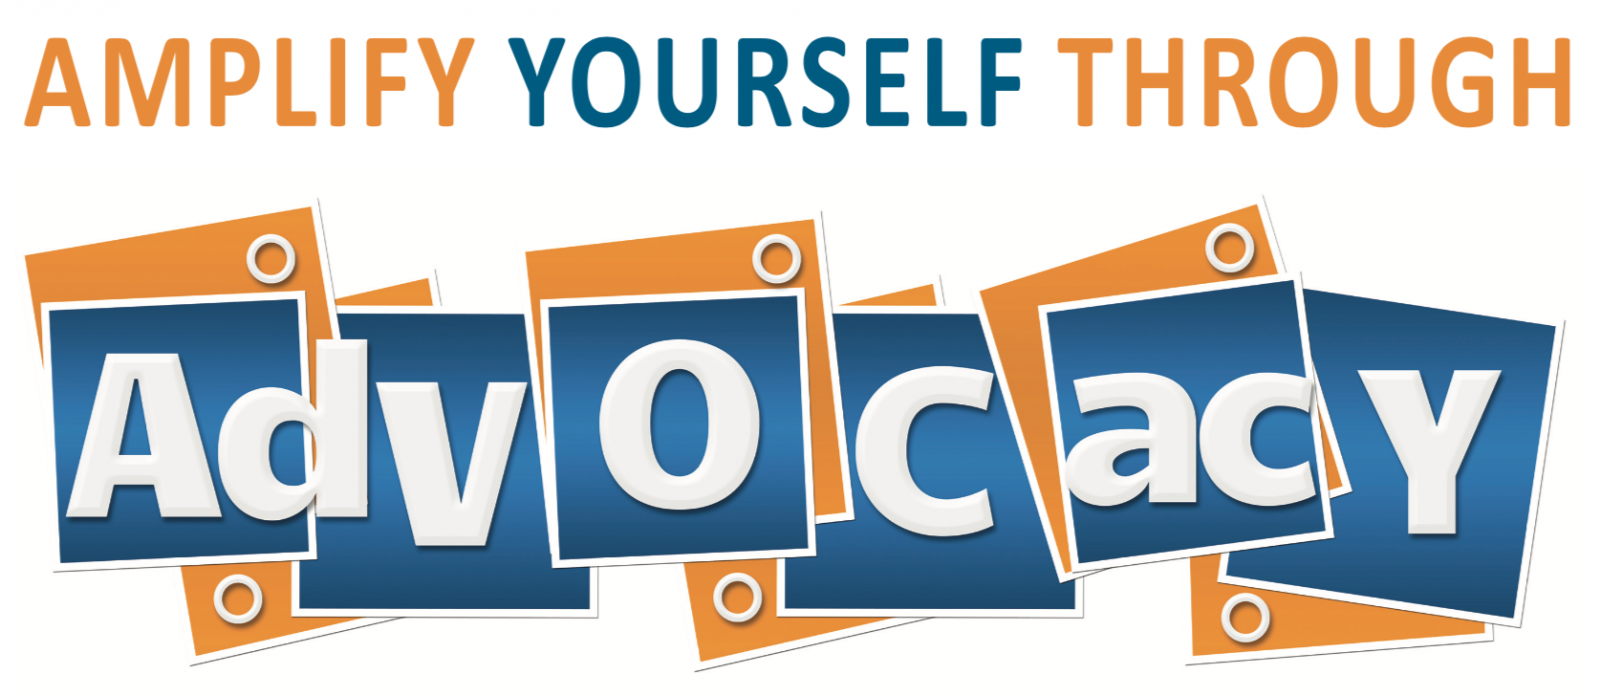 Amplify Yourself Through Advocacy